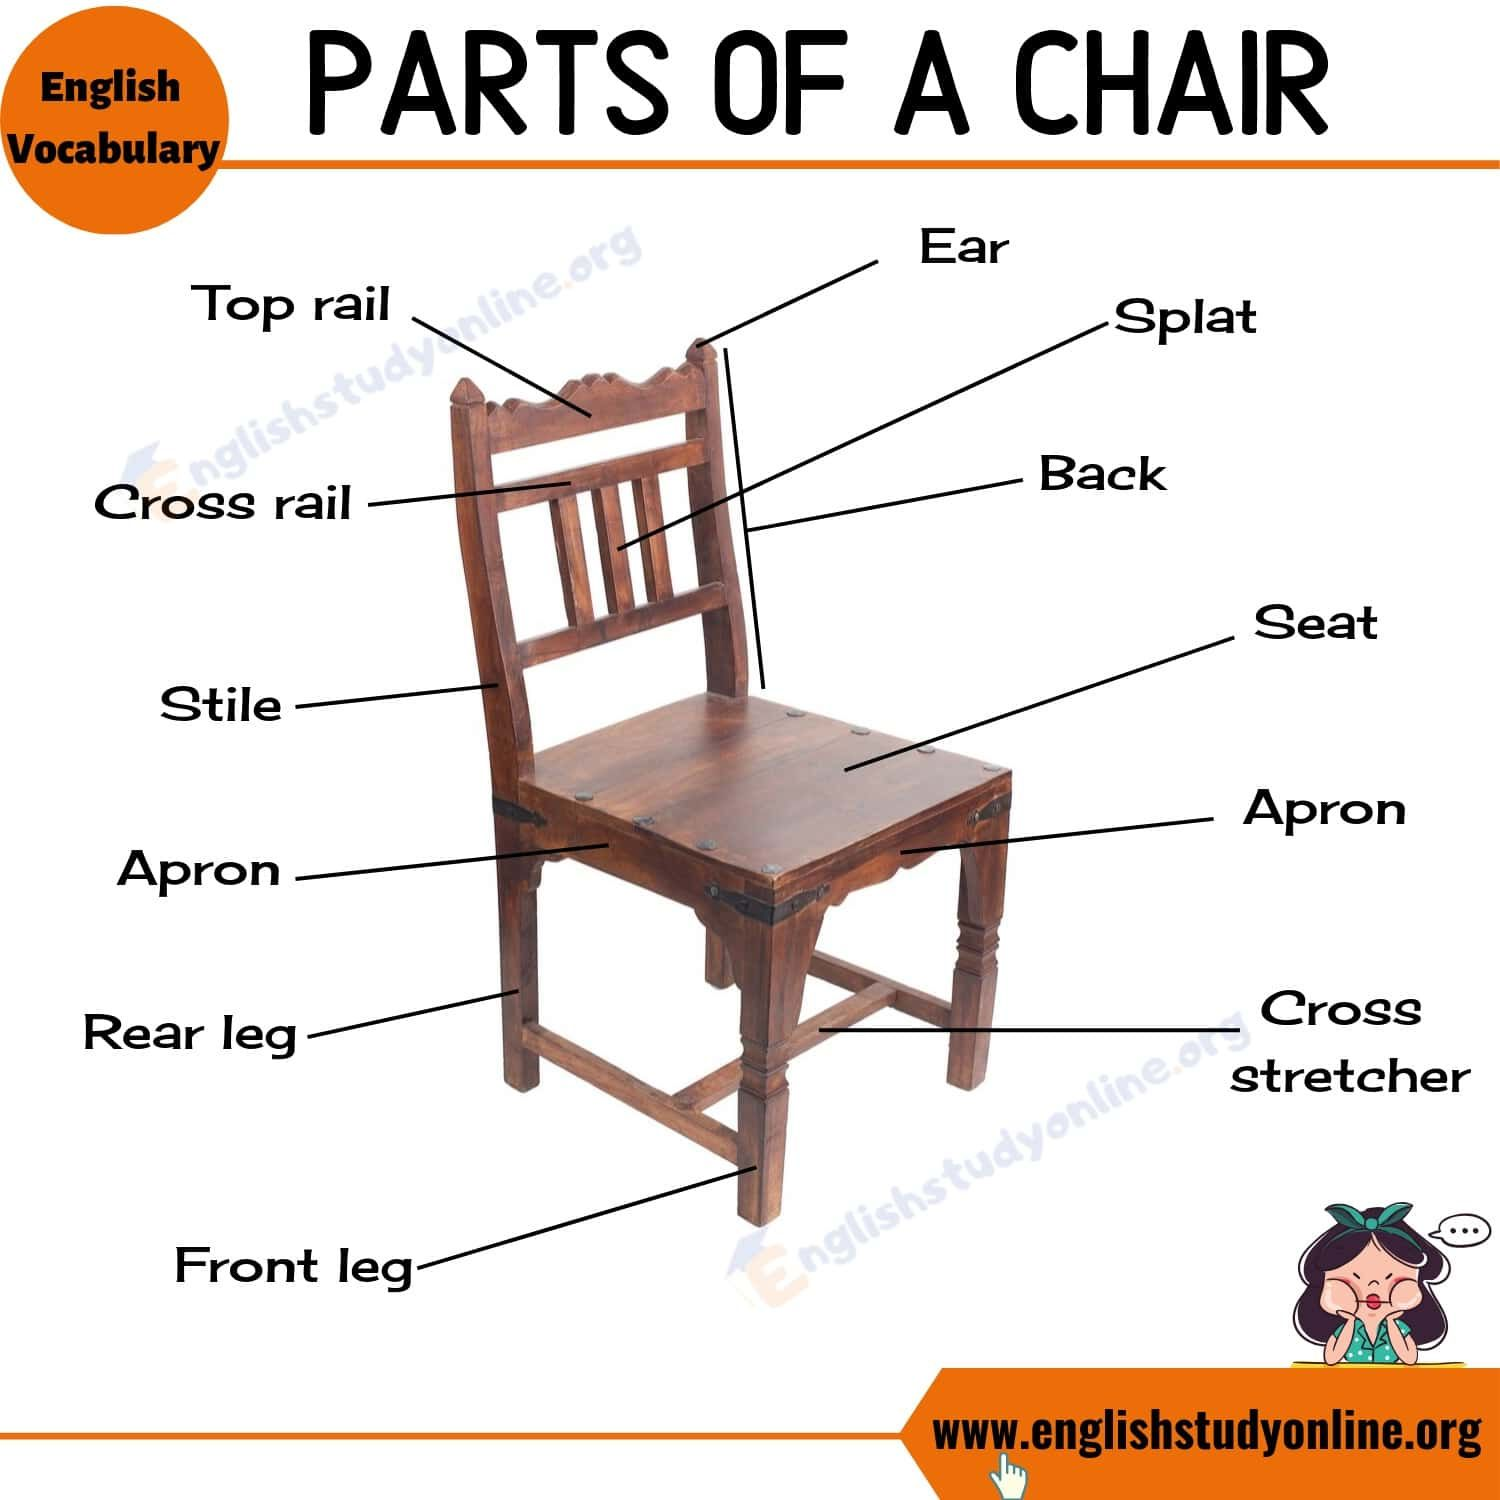 Parts Of A Chair List Of Different Parts Of A Chair With Useful Esl Image English Study Online In 2020 Chair Parts English Study Chair